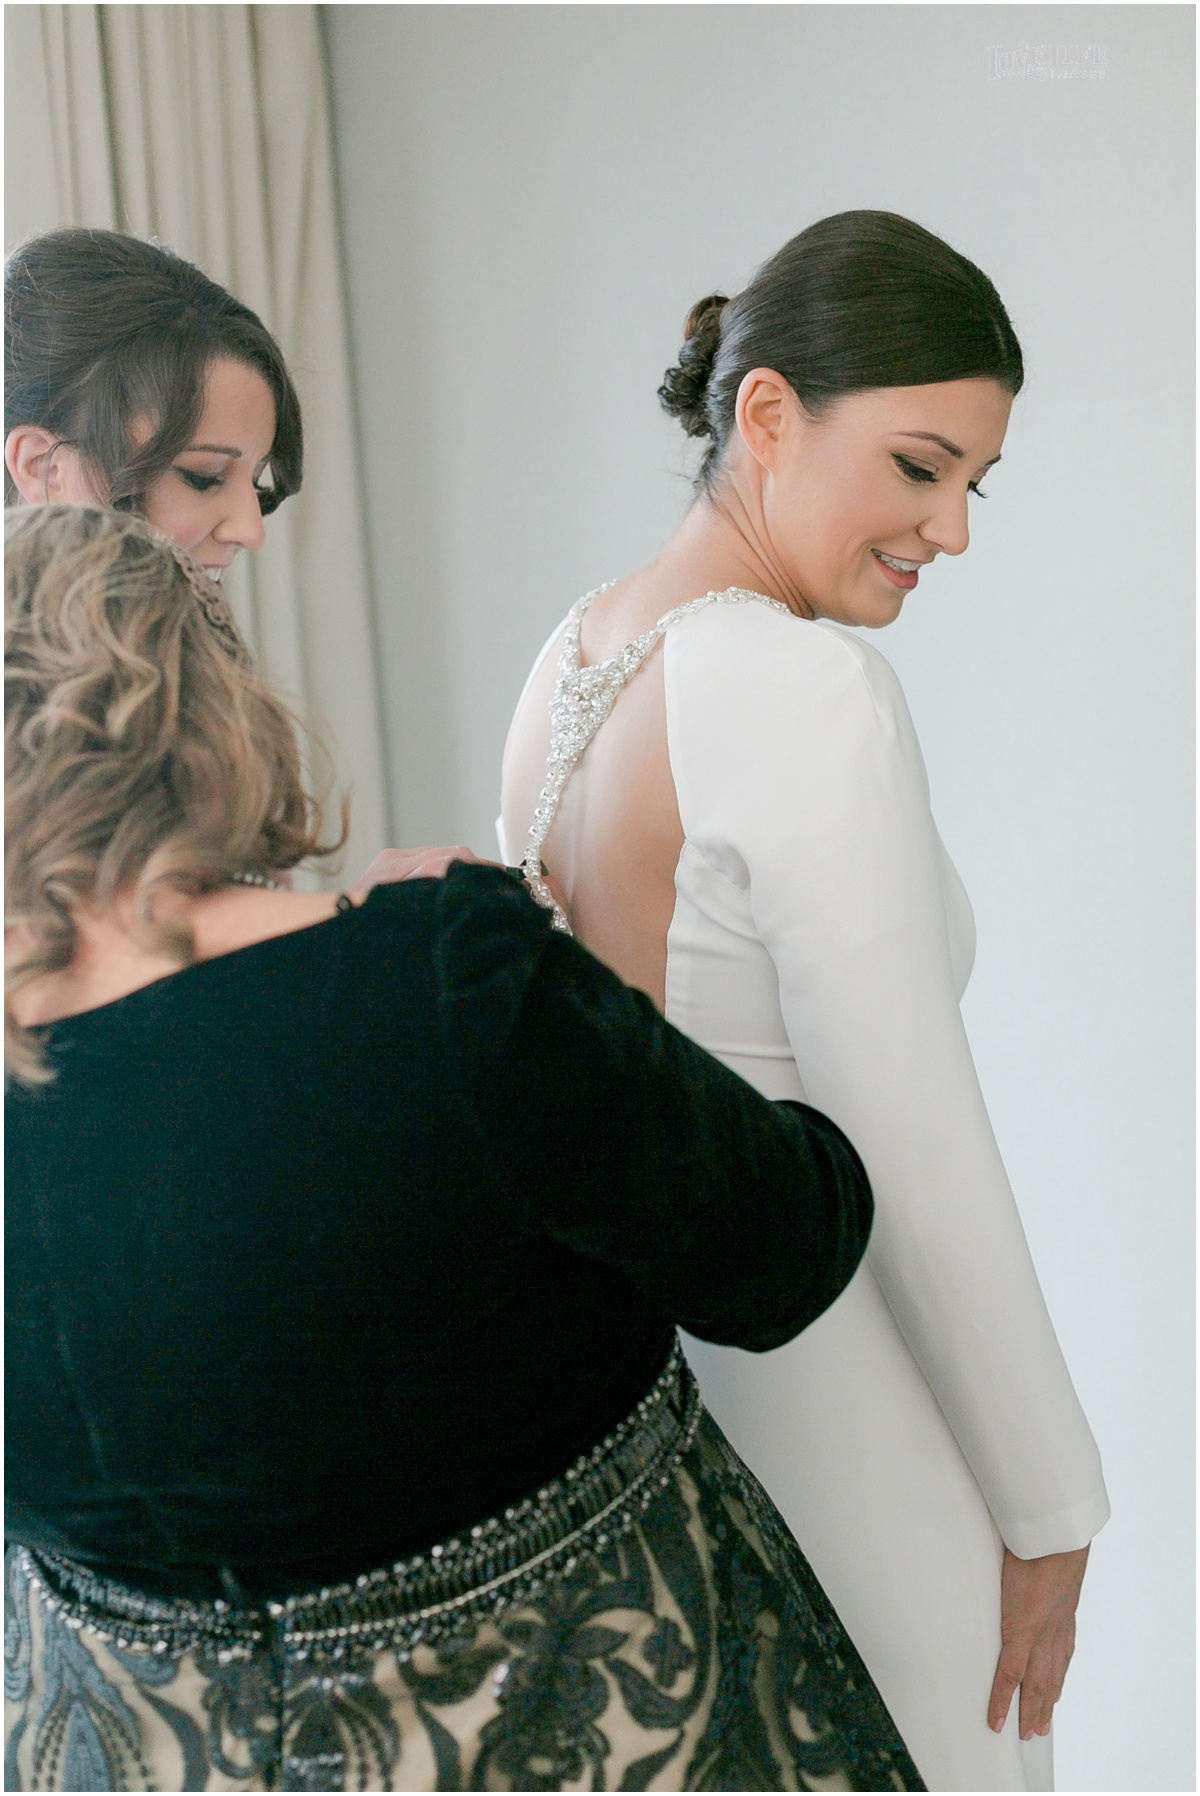 Winter District Winery Wedding bride putting on gown.JPG